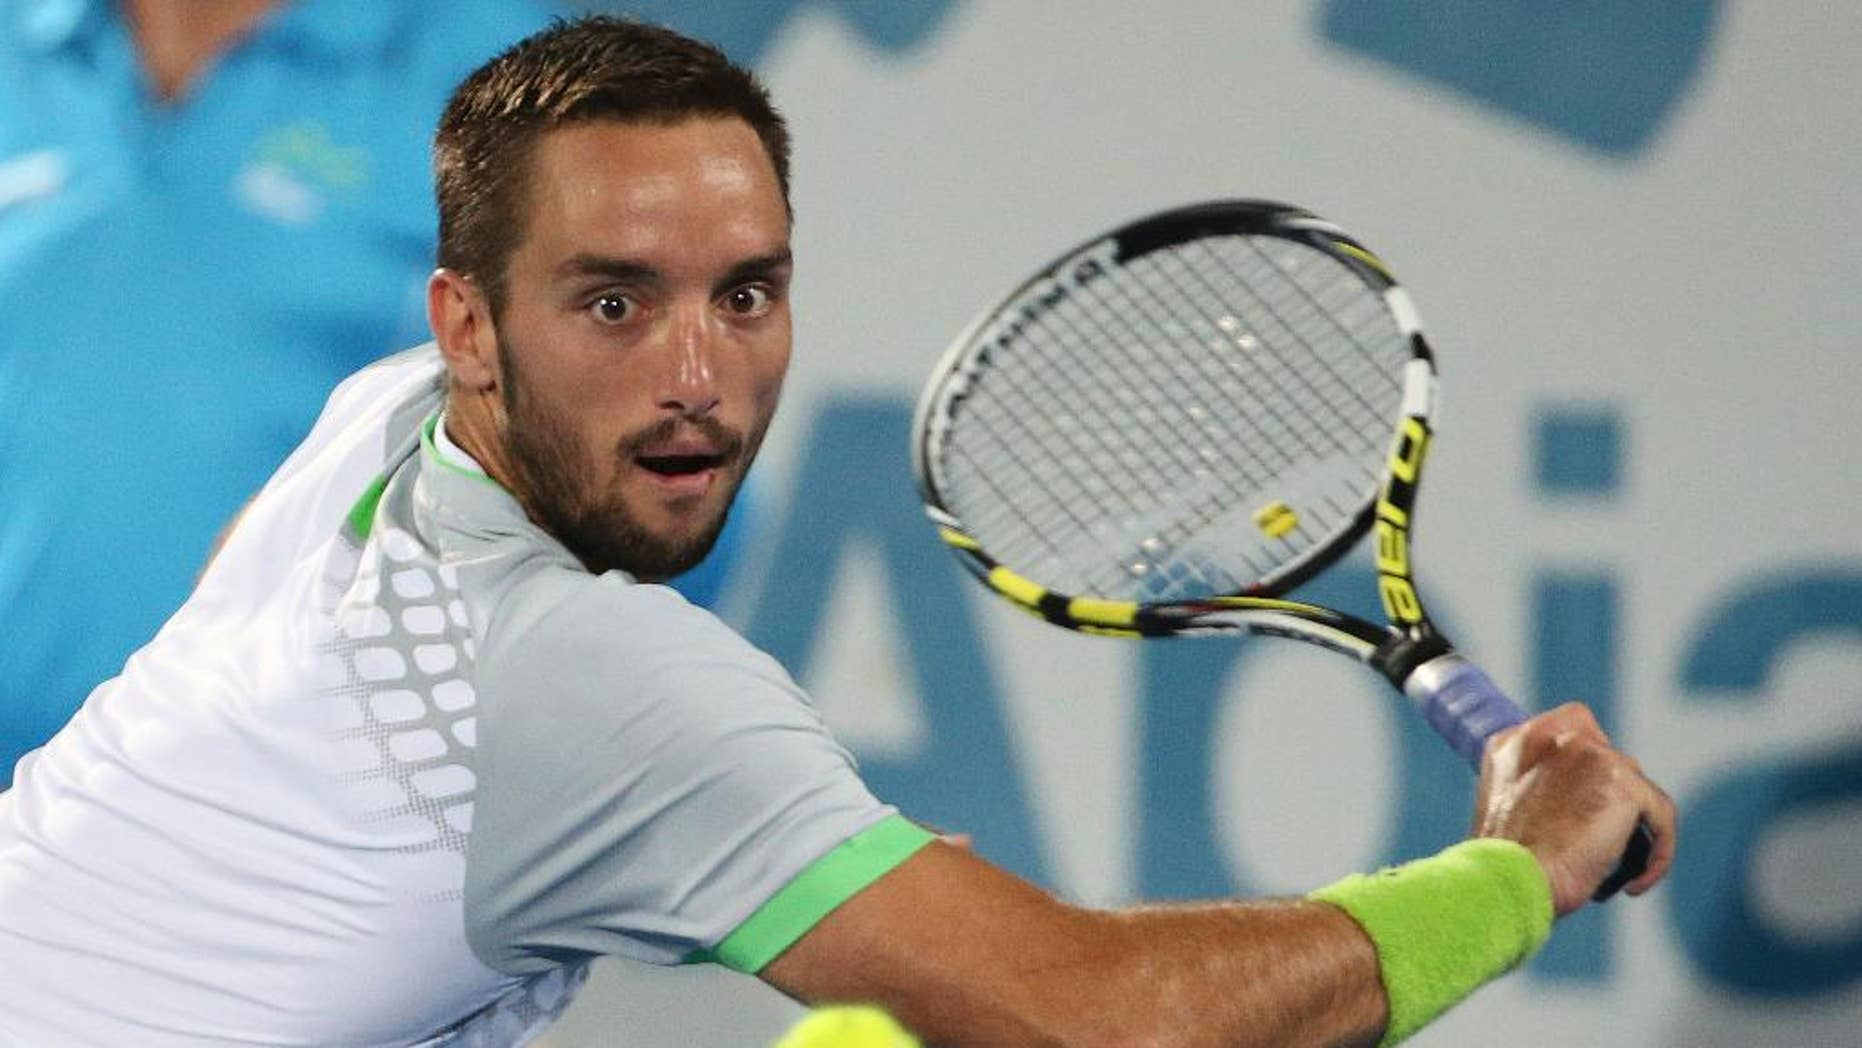 Viktor Troicki of Serbia plays a shot in the men's final against Mikhail Kukushkin of Kazakhstan at the Sydney International Tennis tournament in Sydney, Saturday, Jan. 17, 2015. (AP Photo/Rob Griffith)